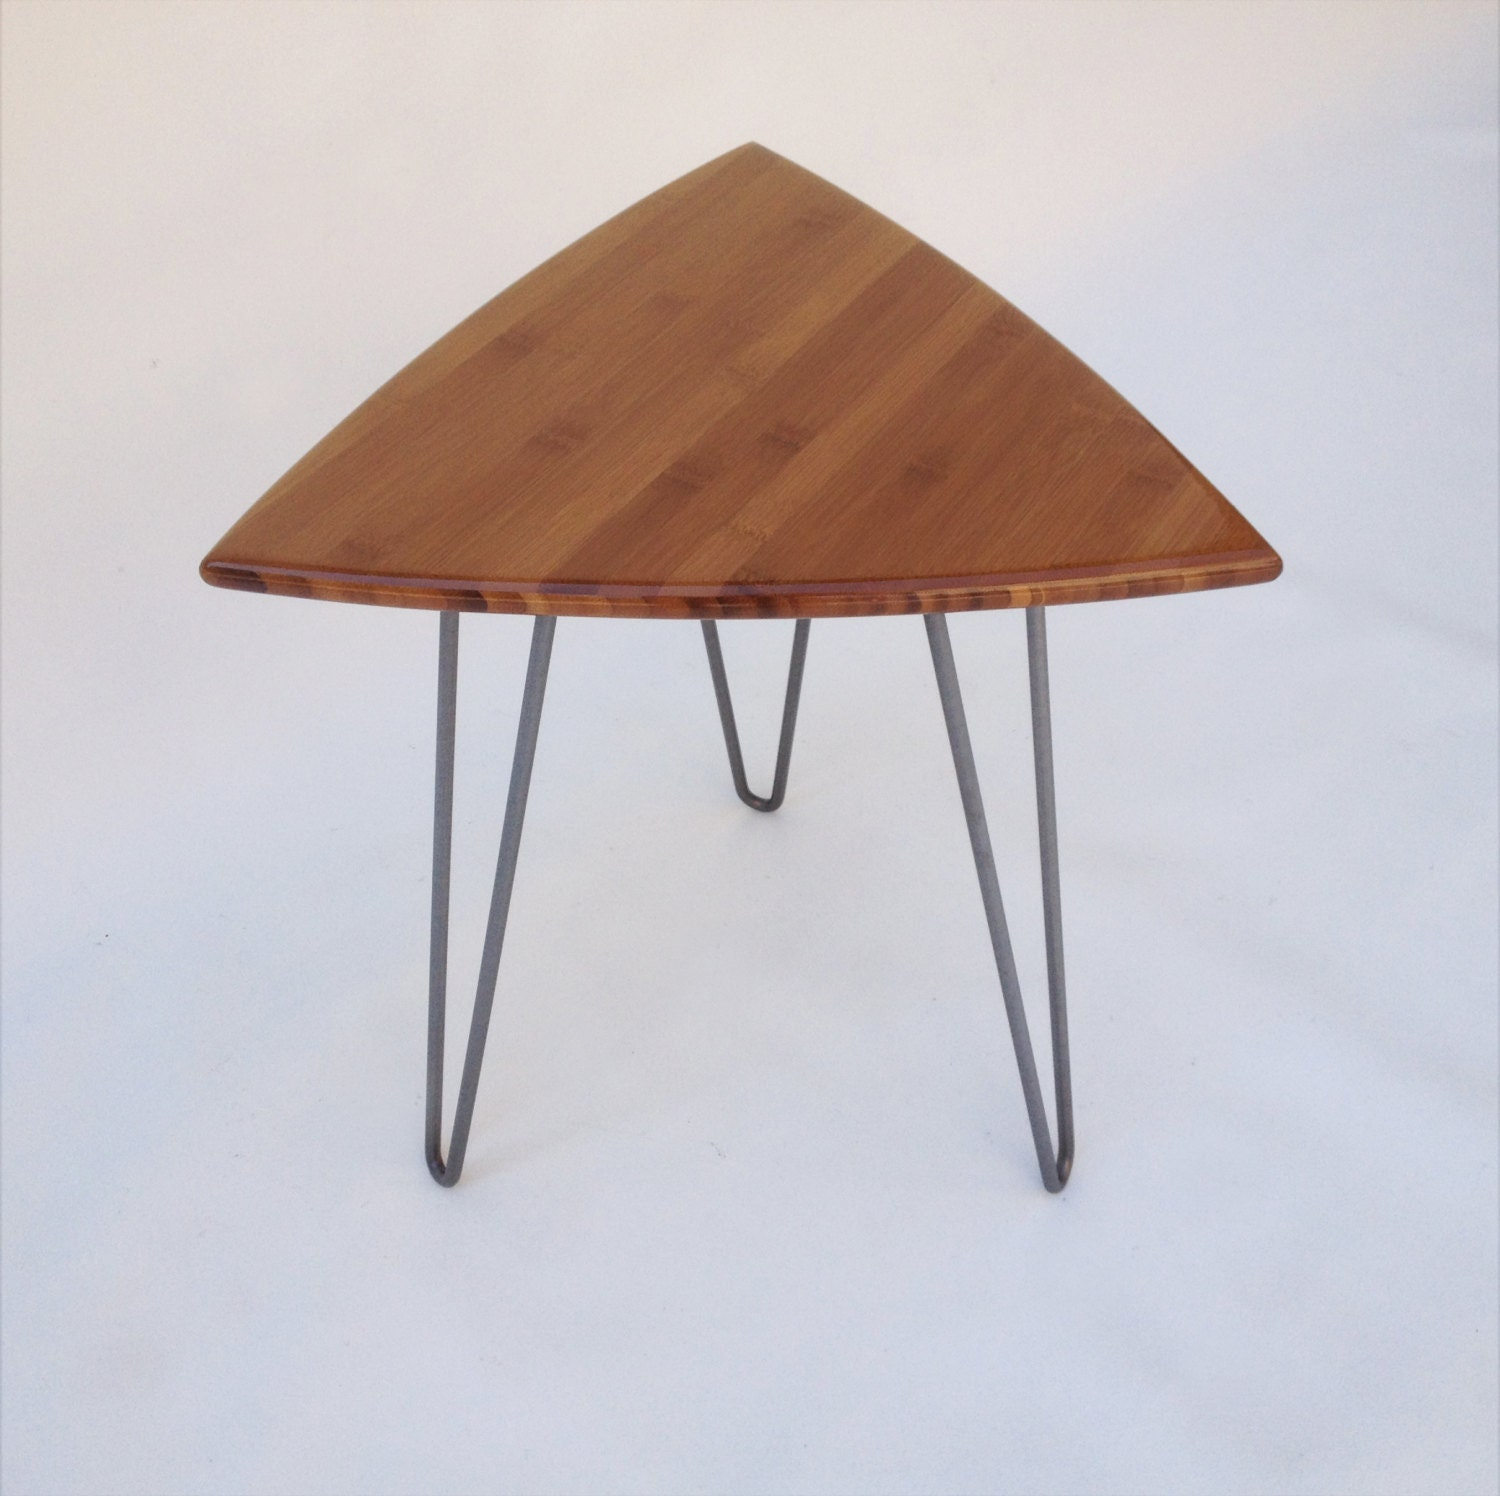 Guitar Pick Side Table Mid Century Modern Triangle Shaped End